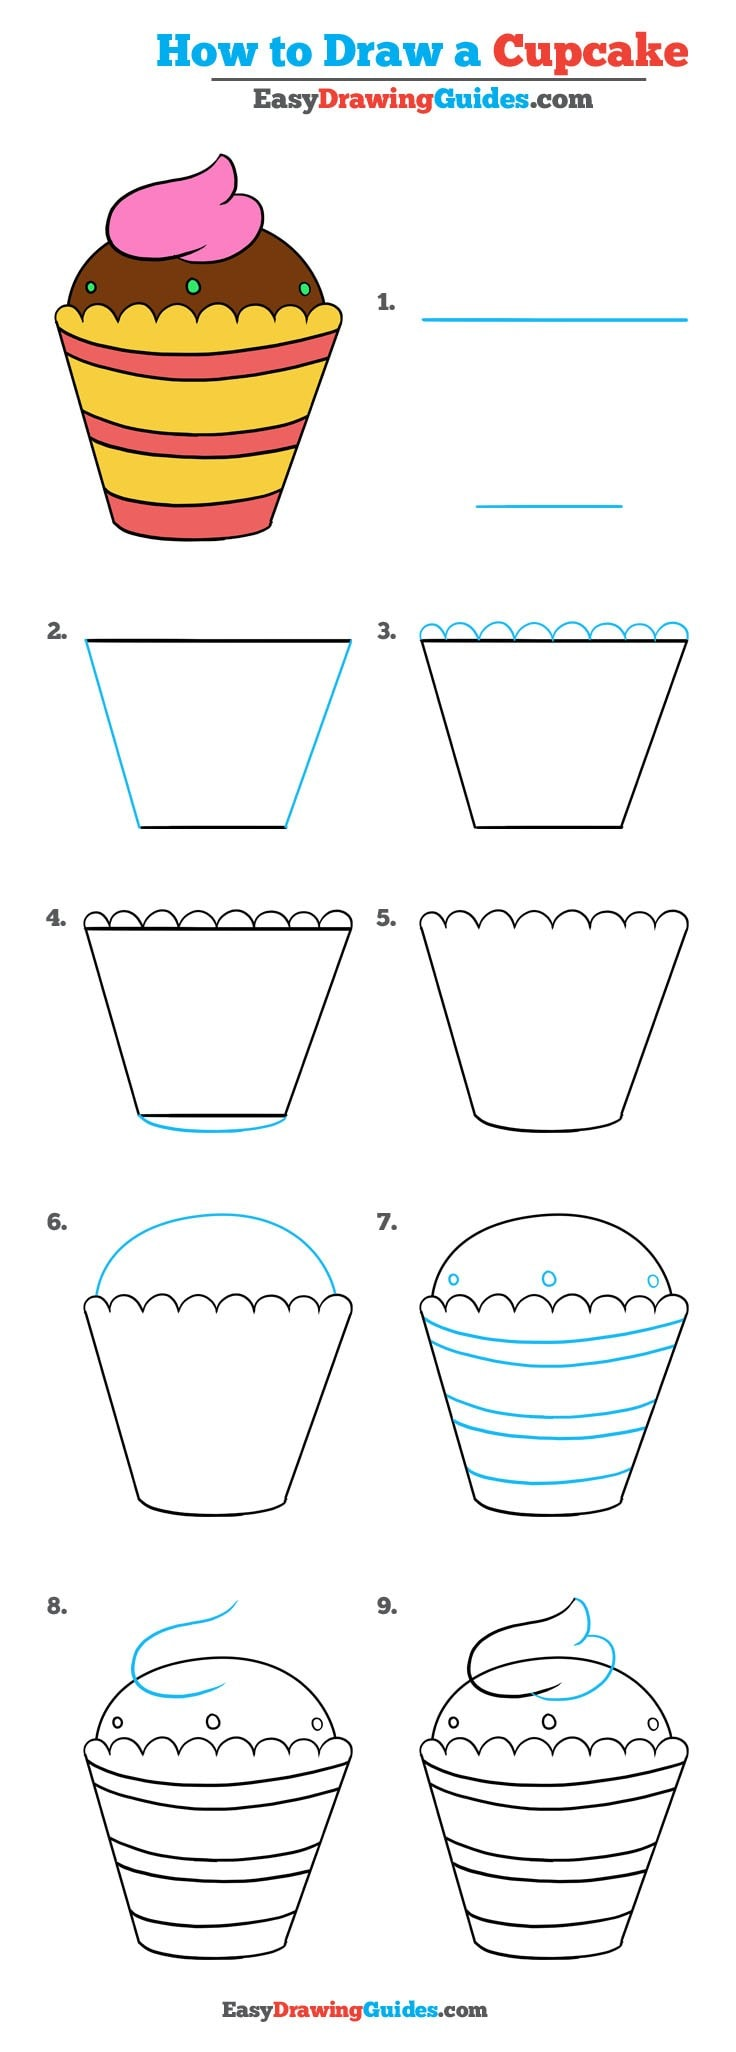 How to Draw a Cupcake - Really Easy Drawing Tutorial